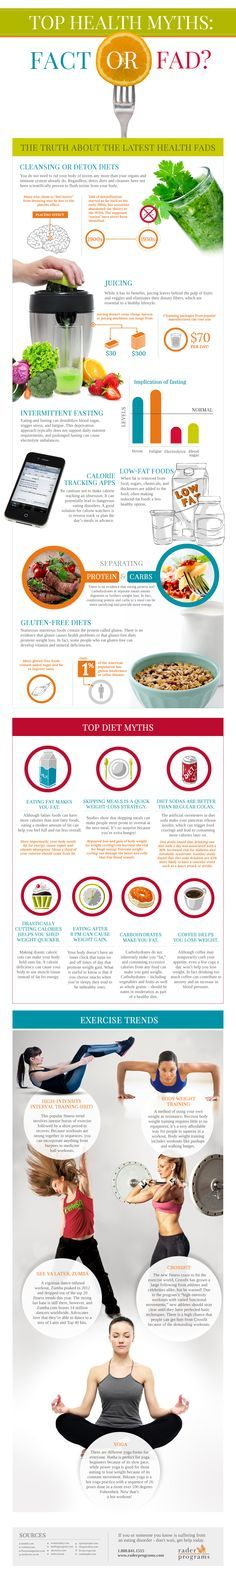 Top Health Myths: Fact or Fad?